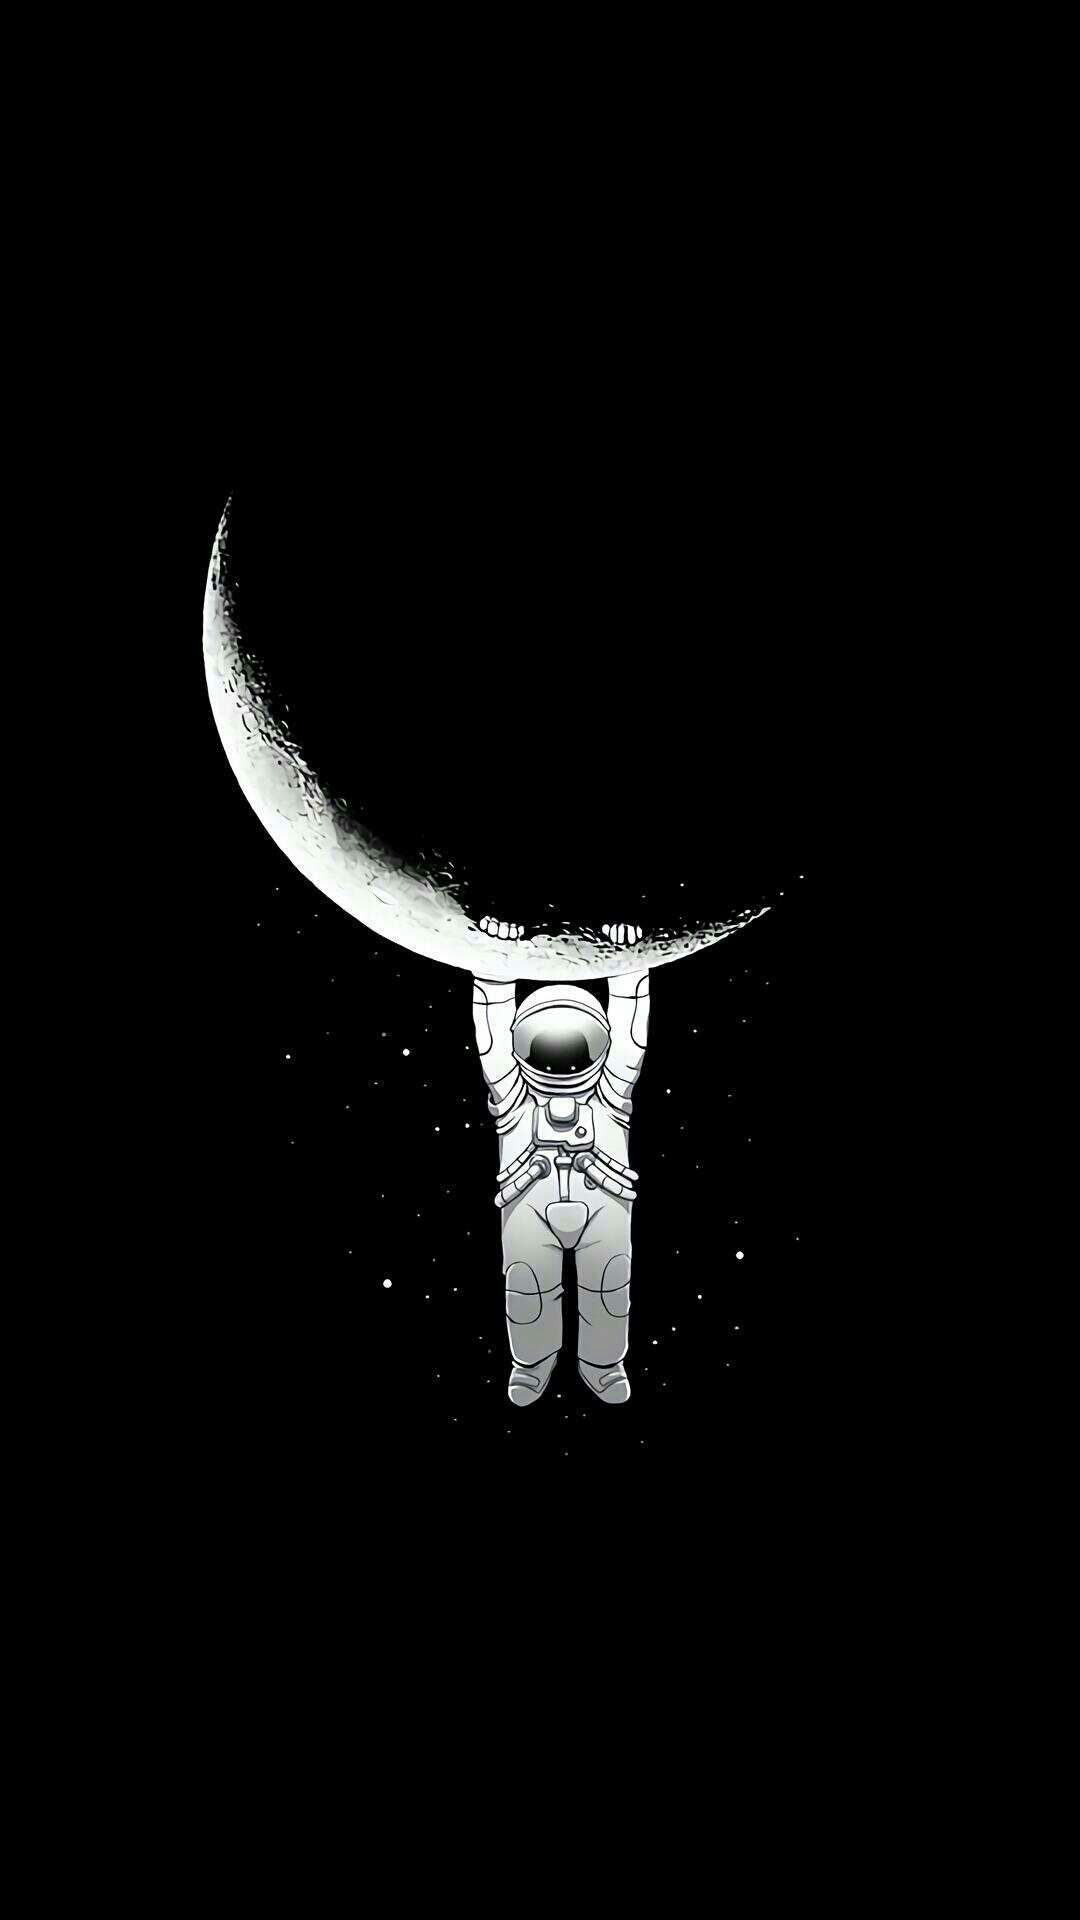 Dark 4k Image In 2020 Iphone Wallpaper Hipster Astronaut Wallpaper Dark Wallpaper